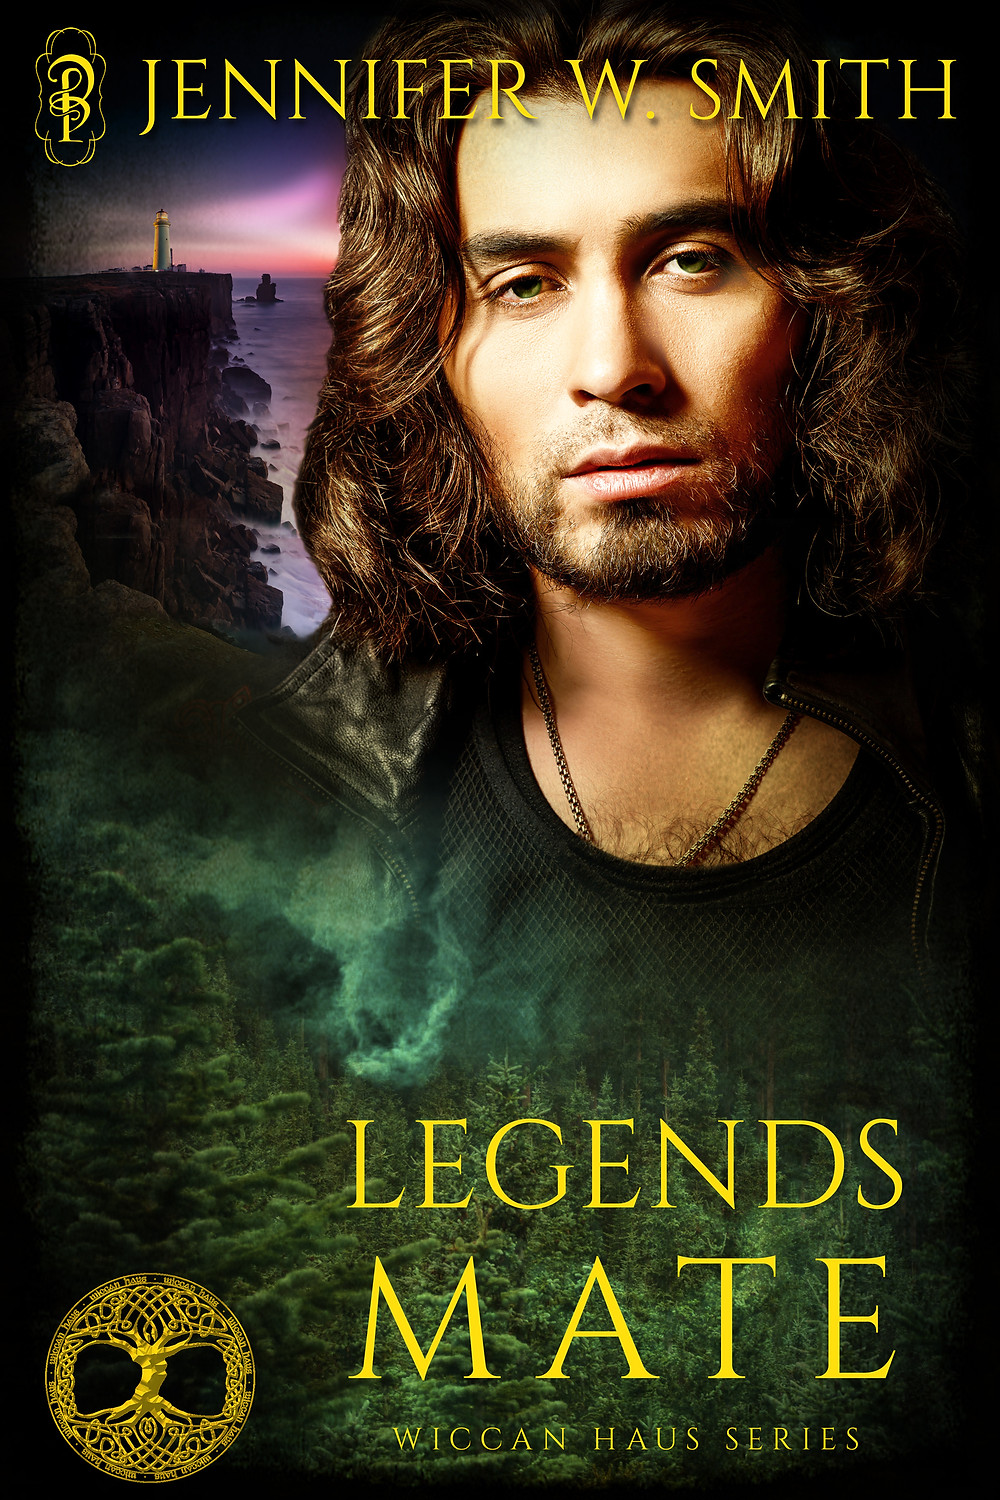 Legends Mate book cover